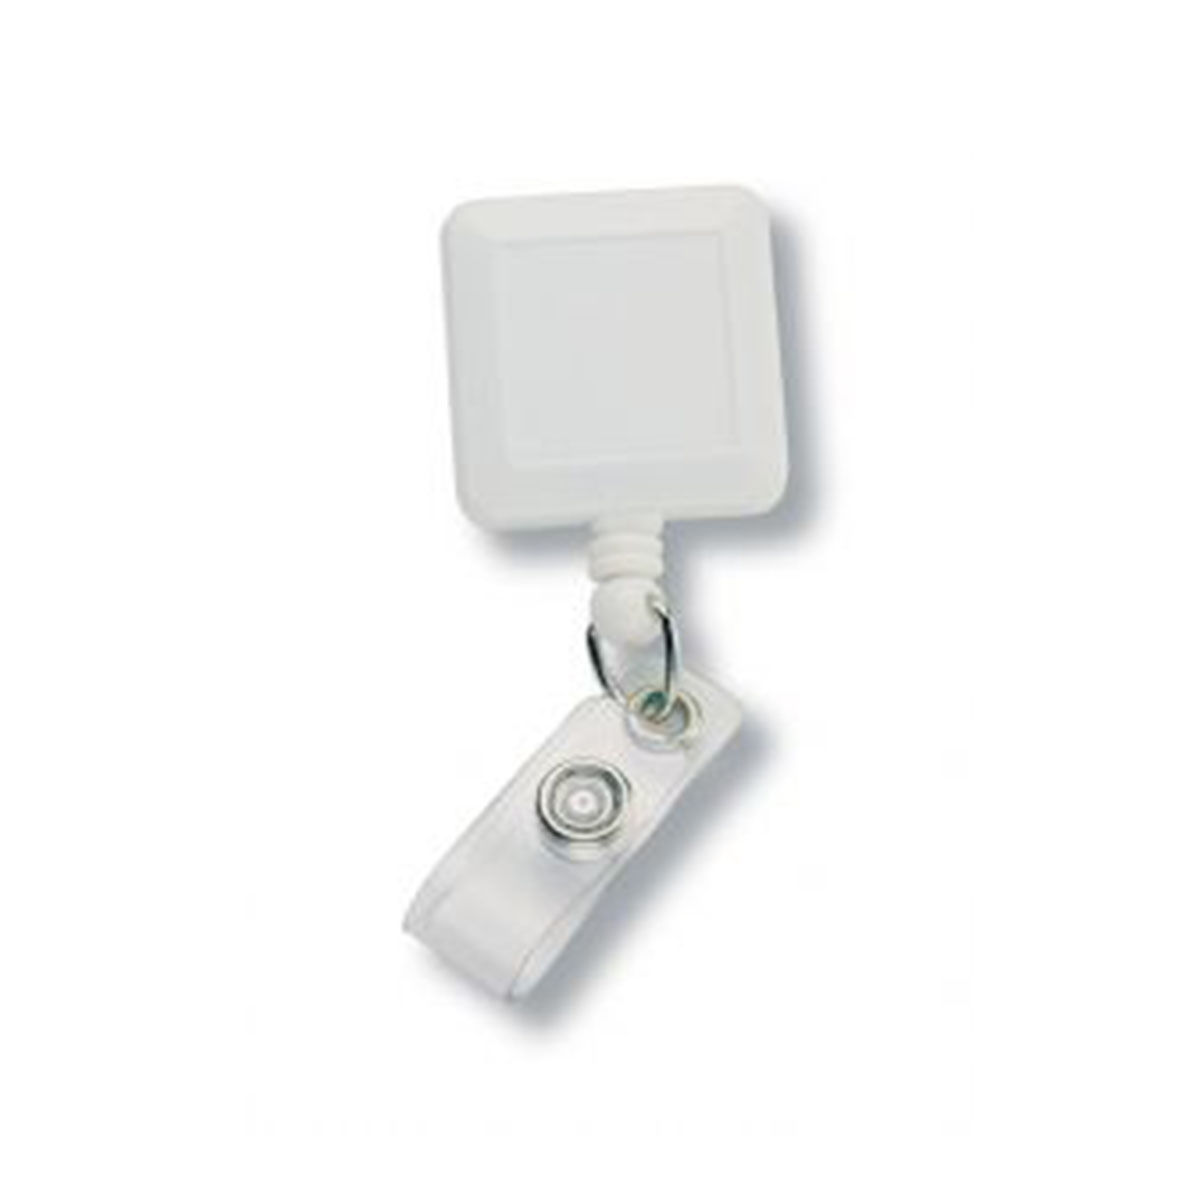 Square Retractable Badge Holder-White.